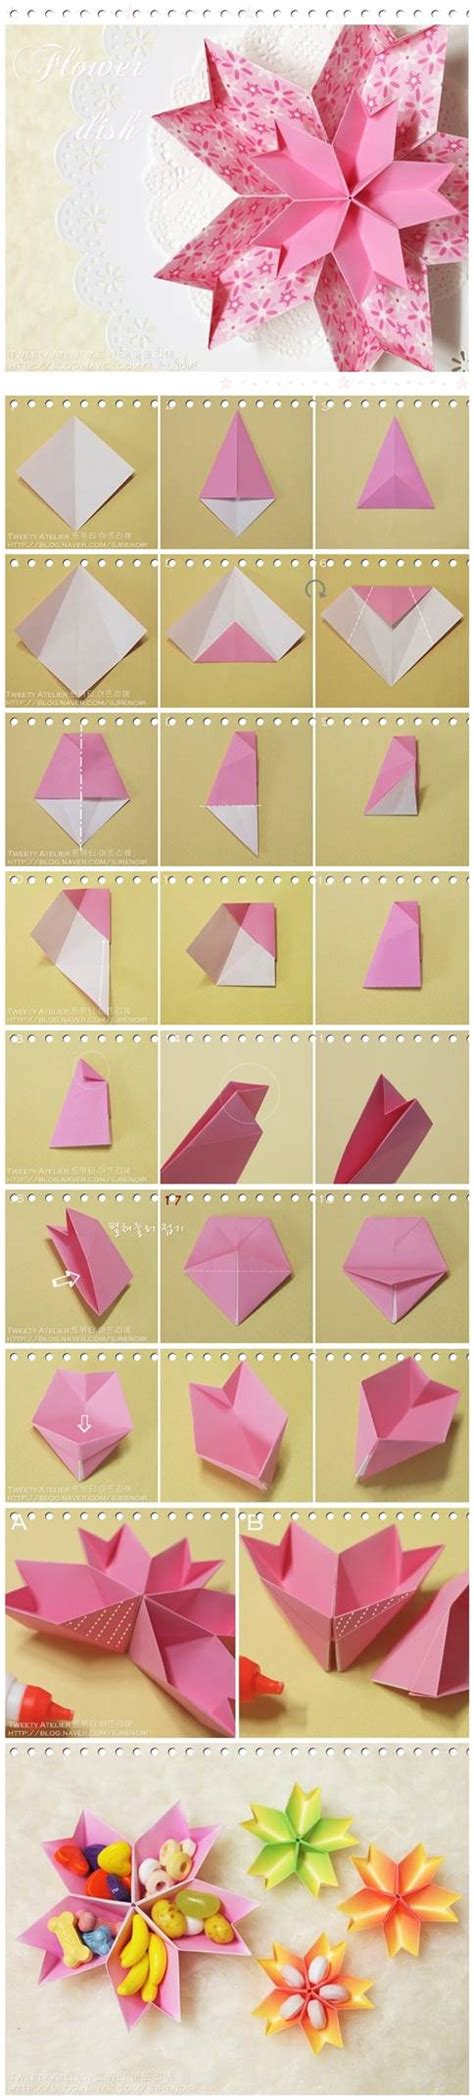 How To Make A Paper Flowers Step By Step - how to make origami flowers step by step breeds picture